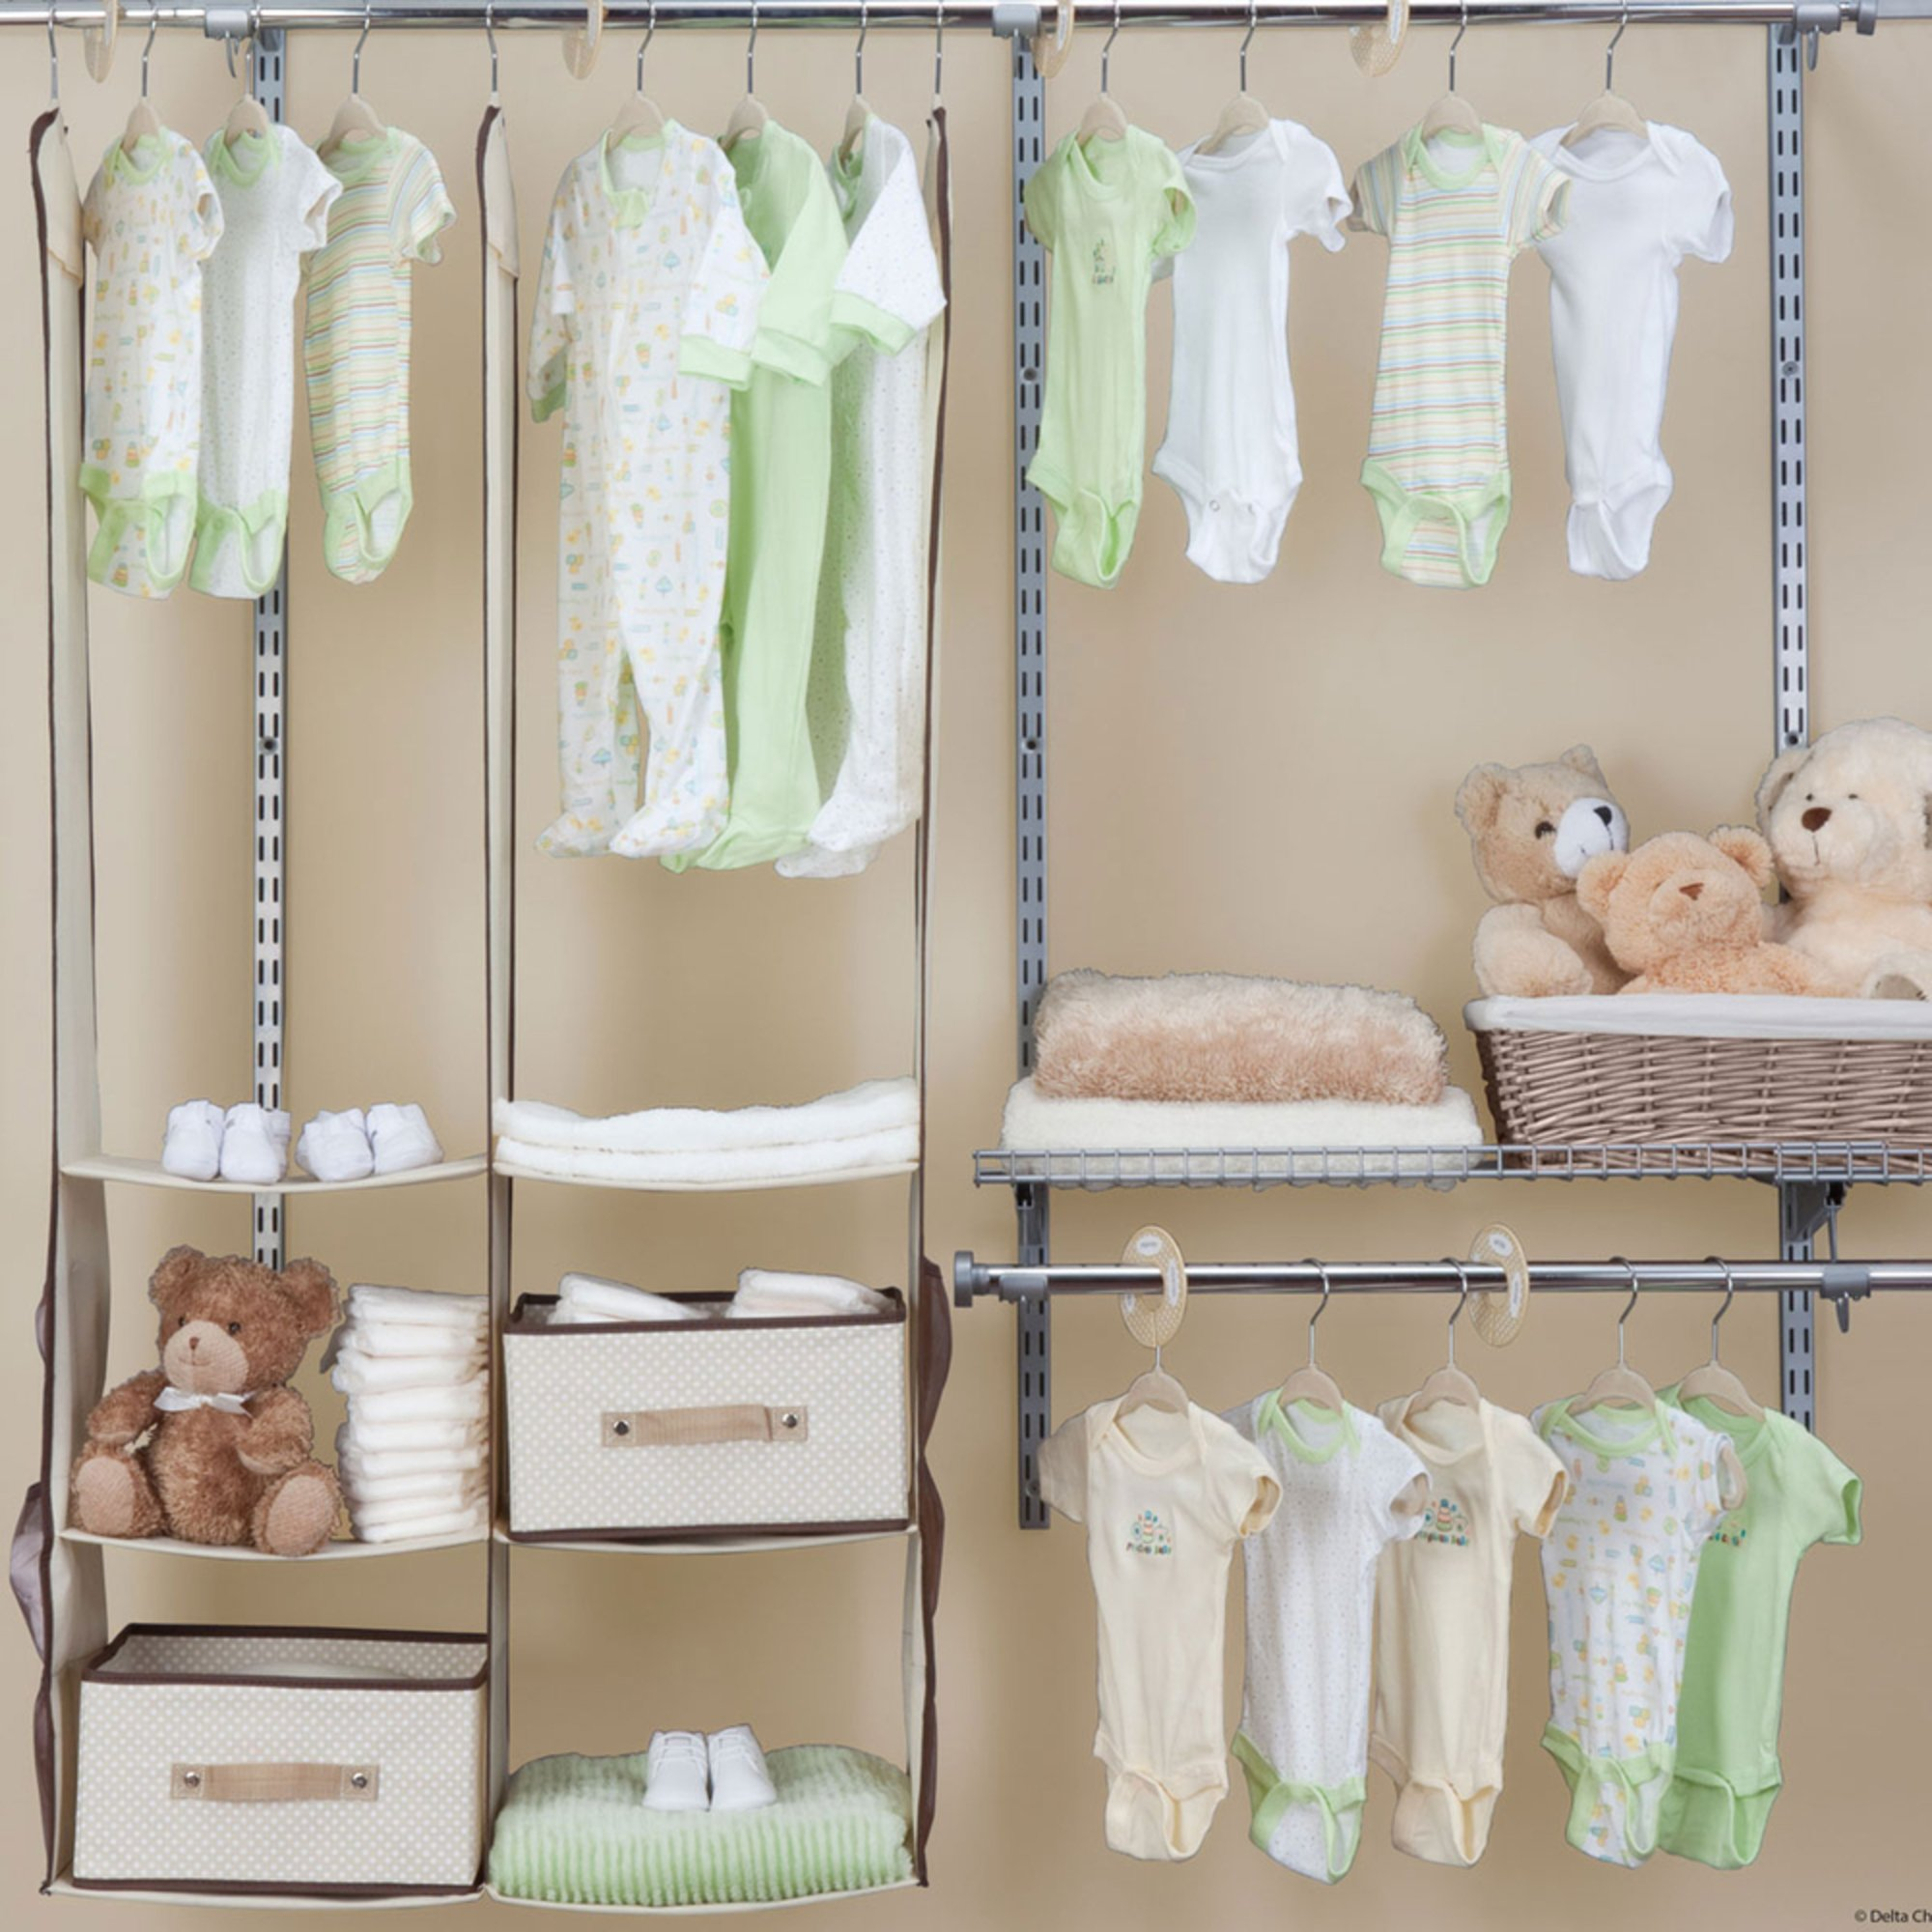 Delta 24 Piece Nursery Closet Organizer Set